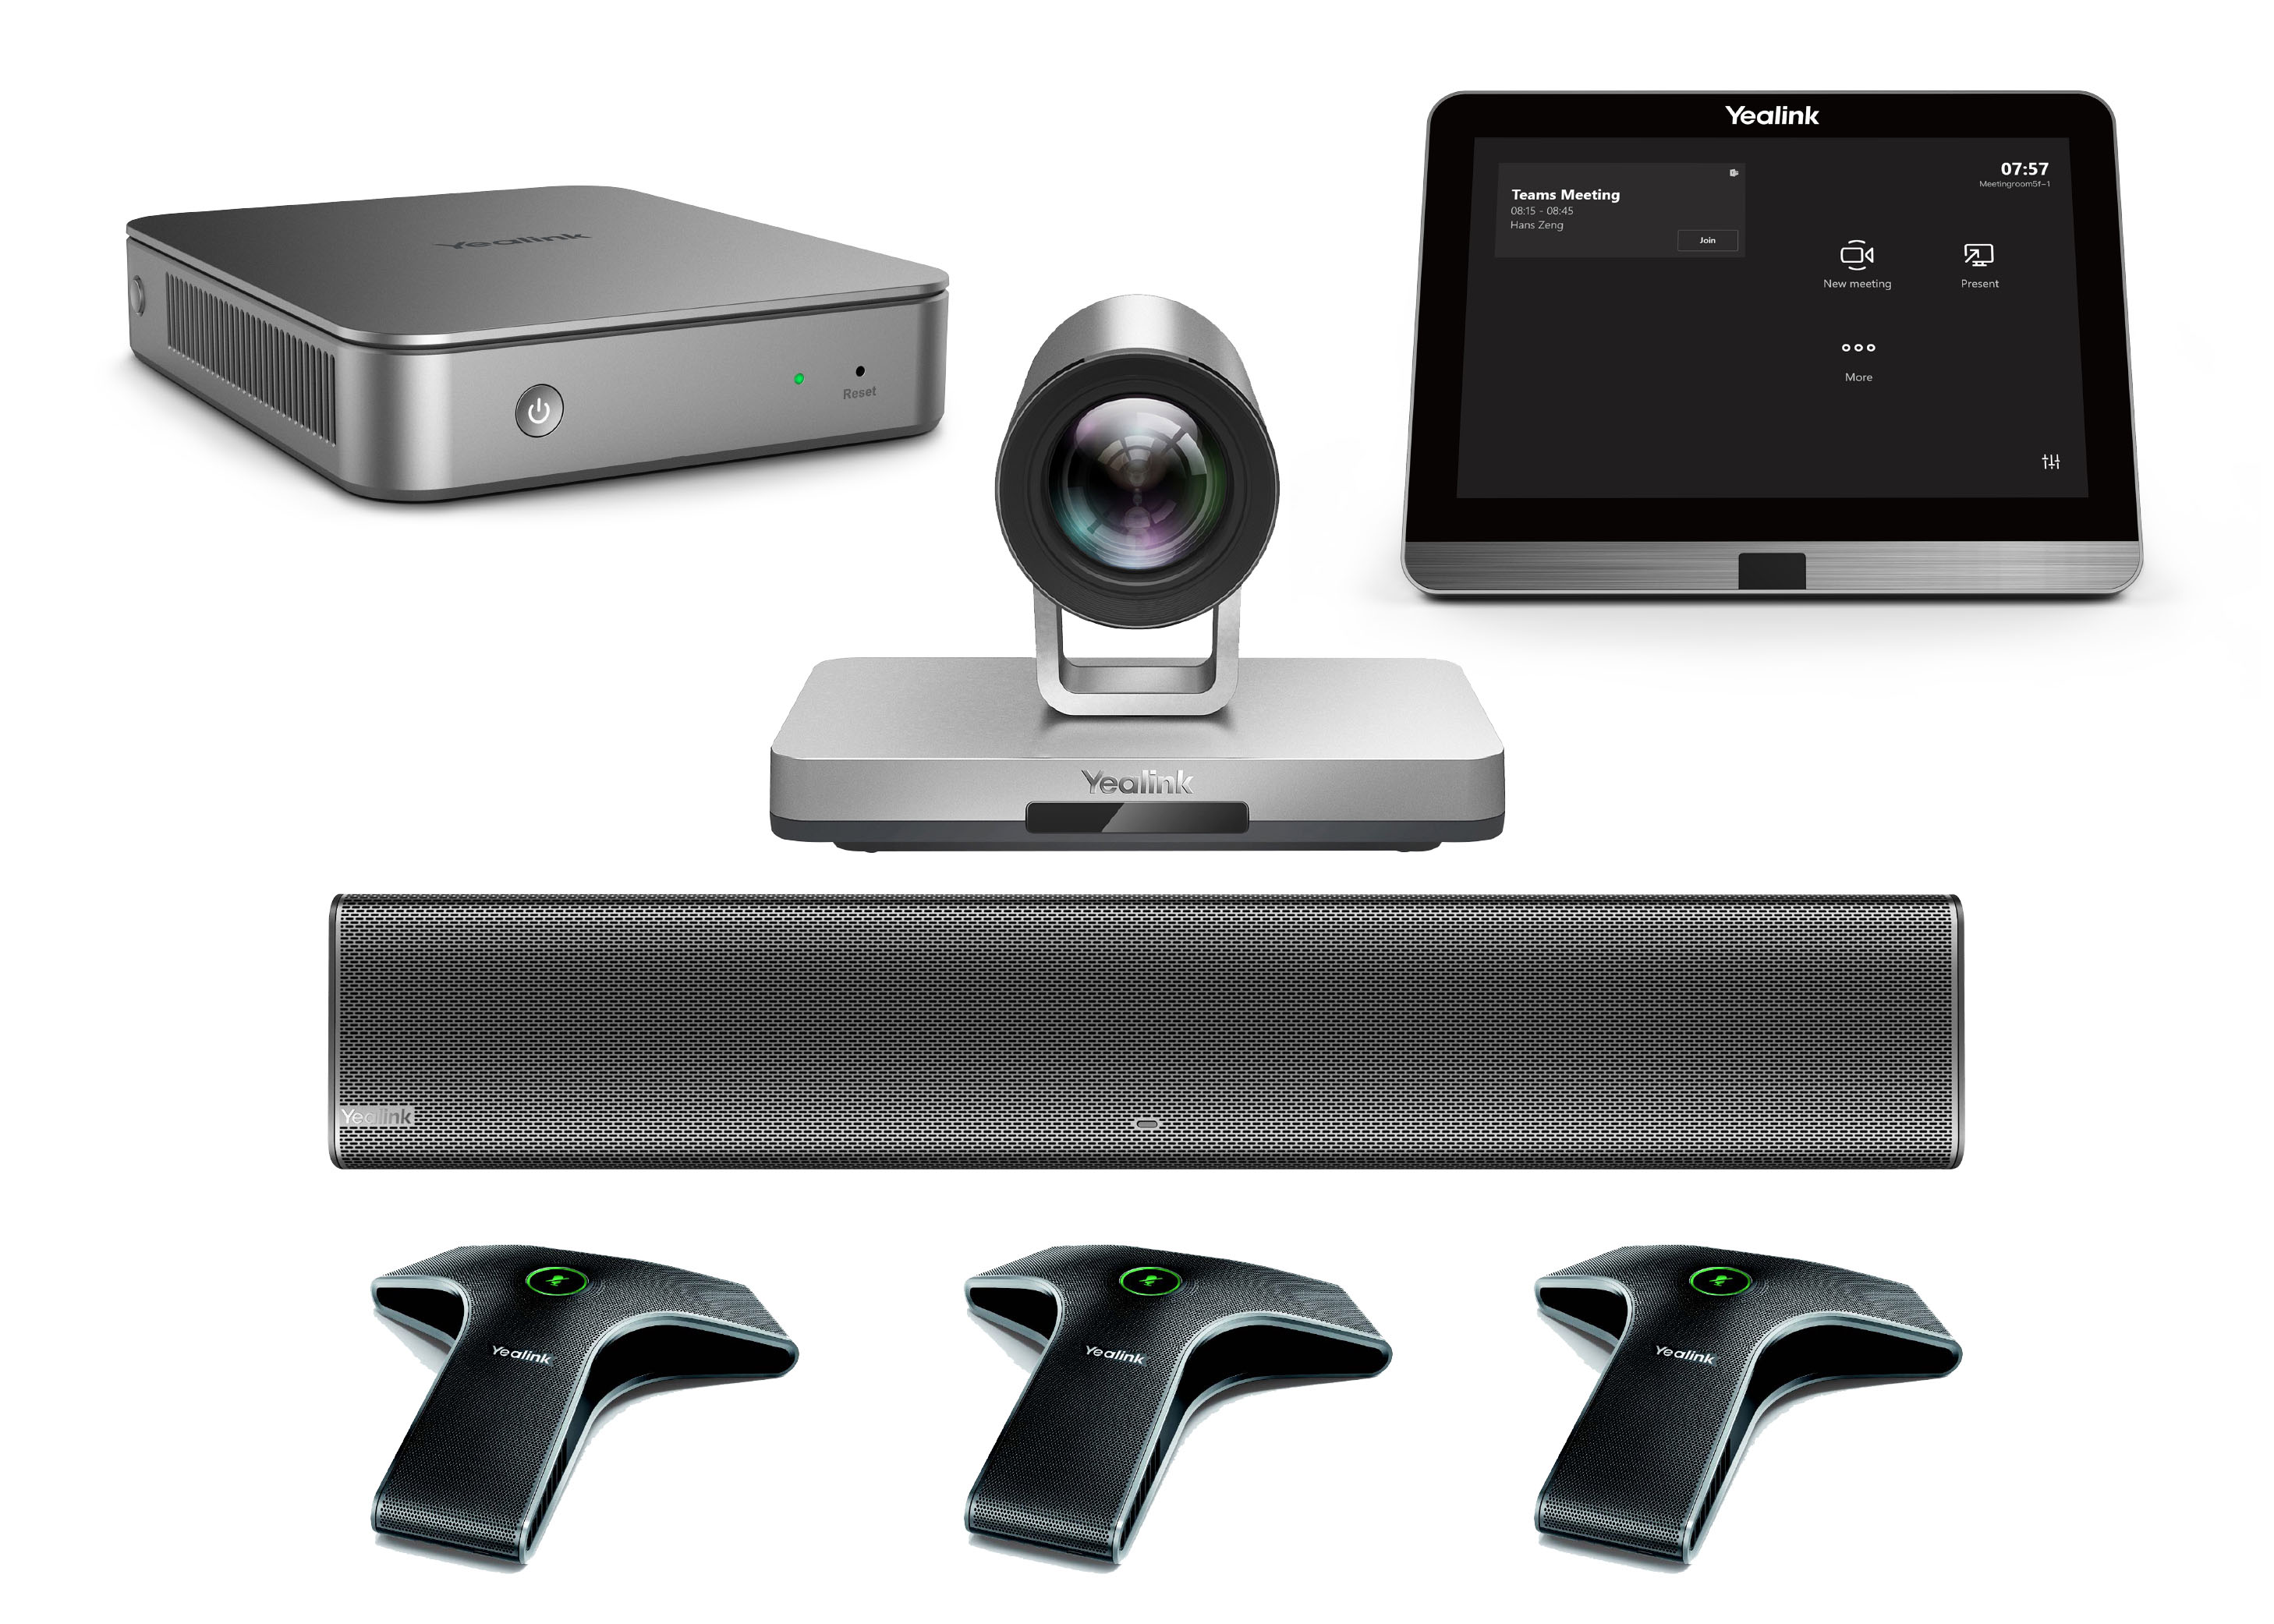 ZVC800-C2-310 12x - Zoom Rooms Kit for large and extra-large rooms - Core i5-8